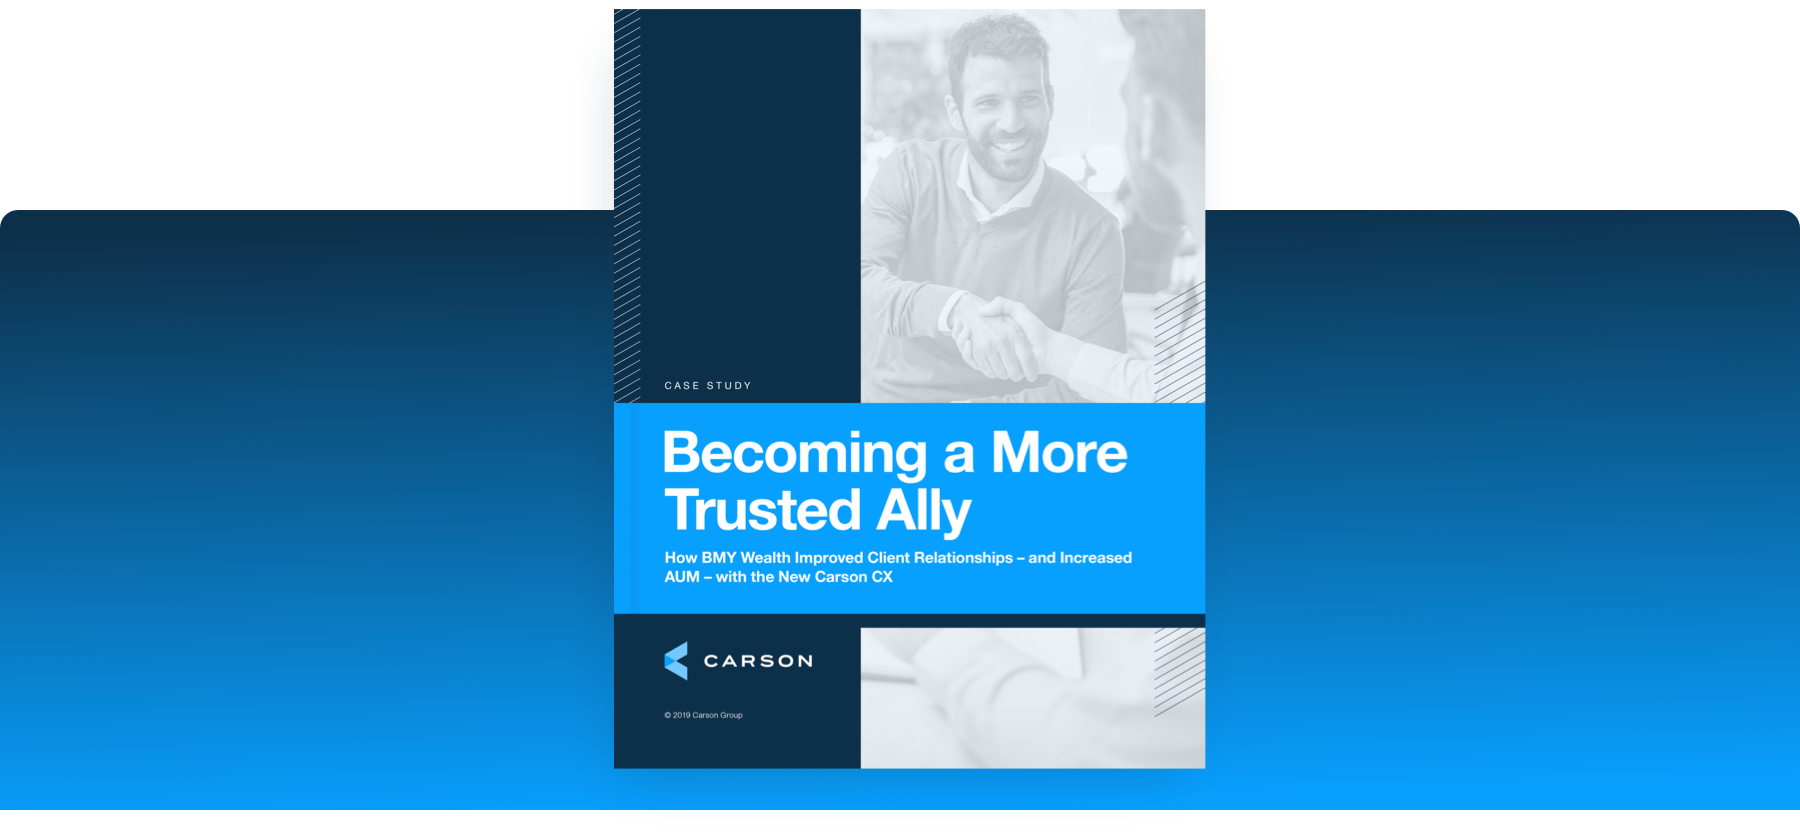 Becoming a More Trusted Ally